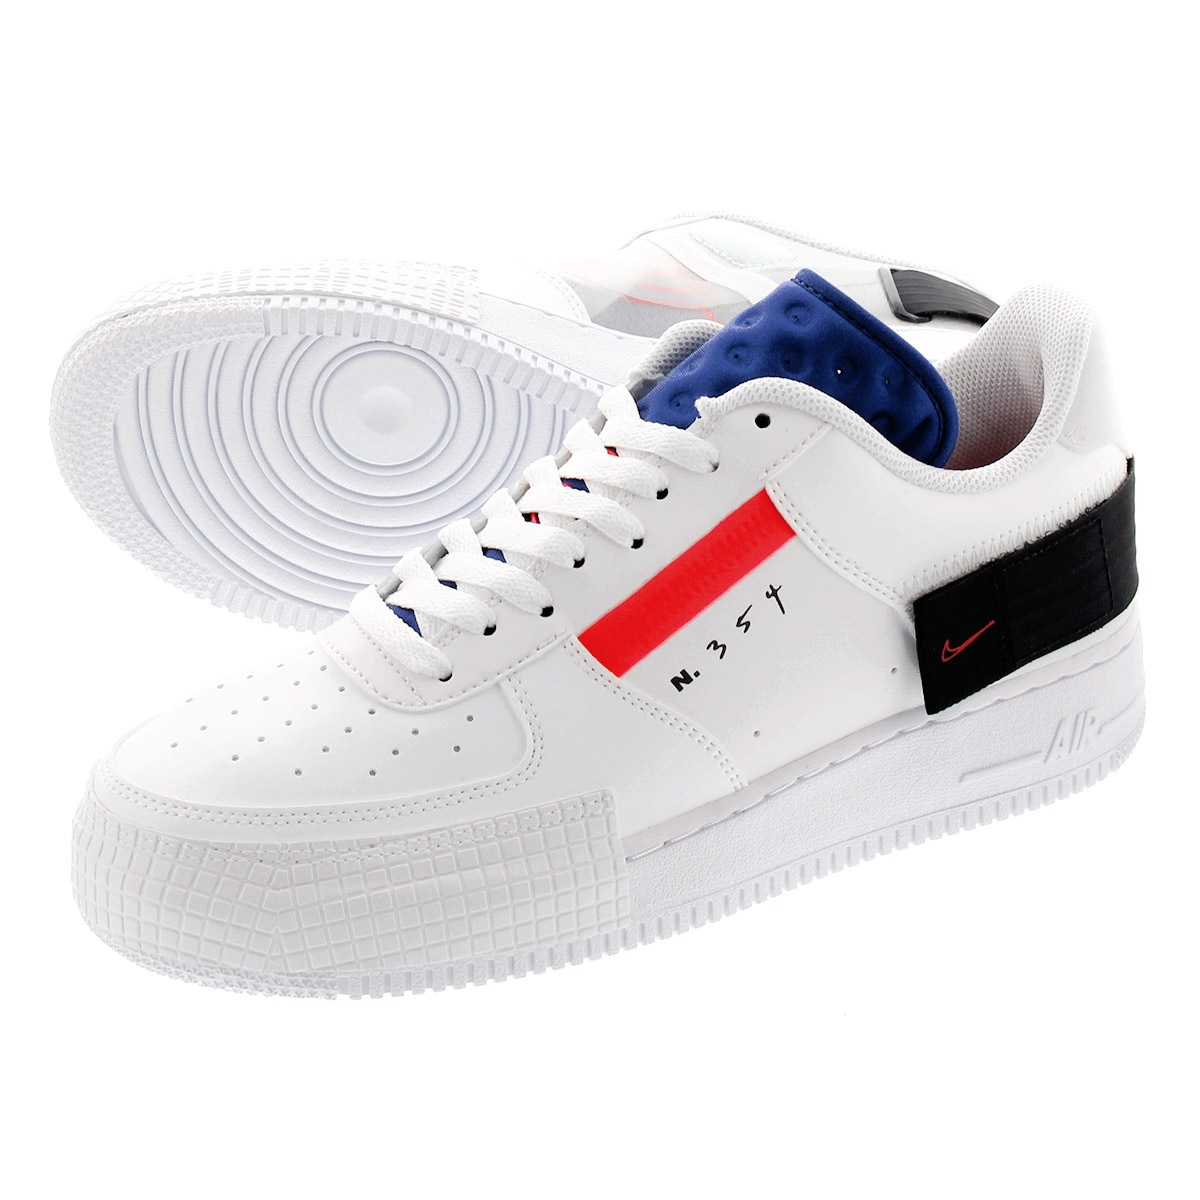 Nike Air Force 1 Type 'Summit White' | More Sneakers